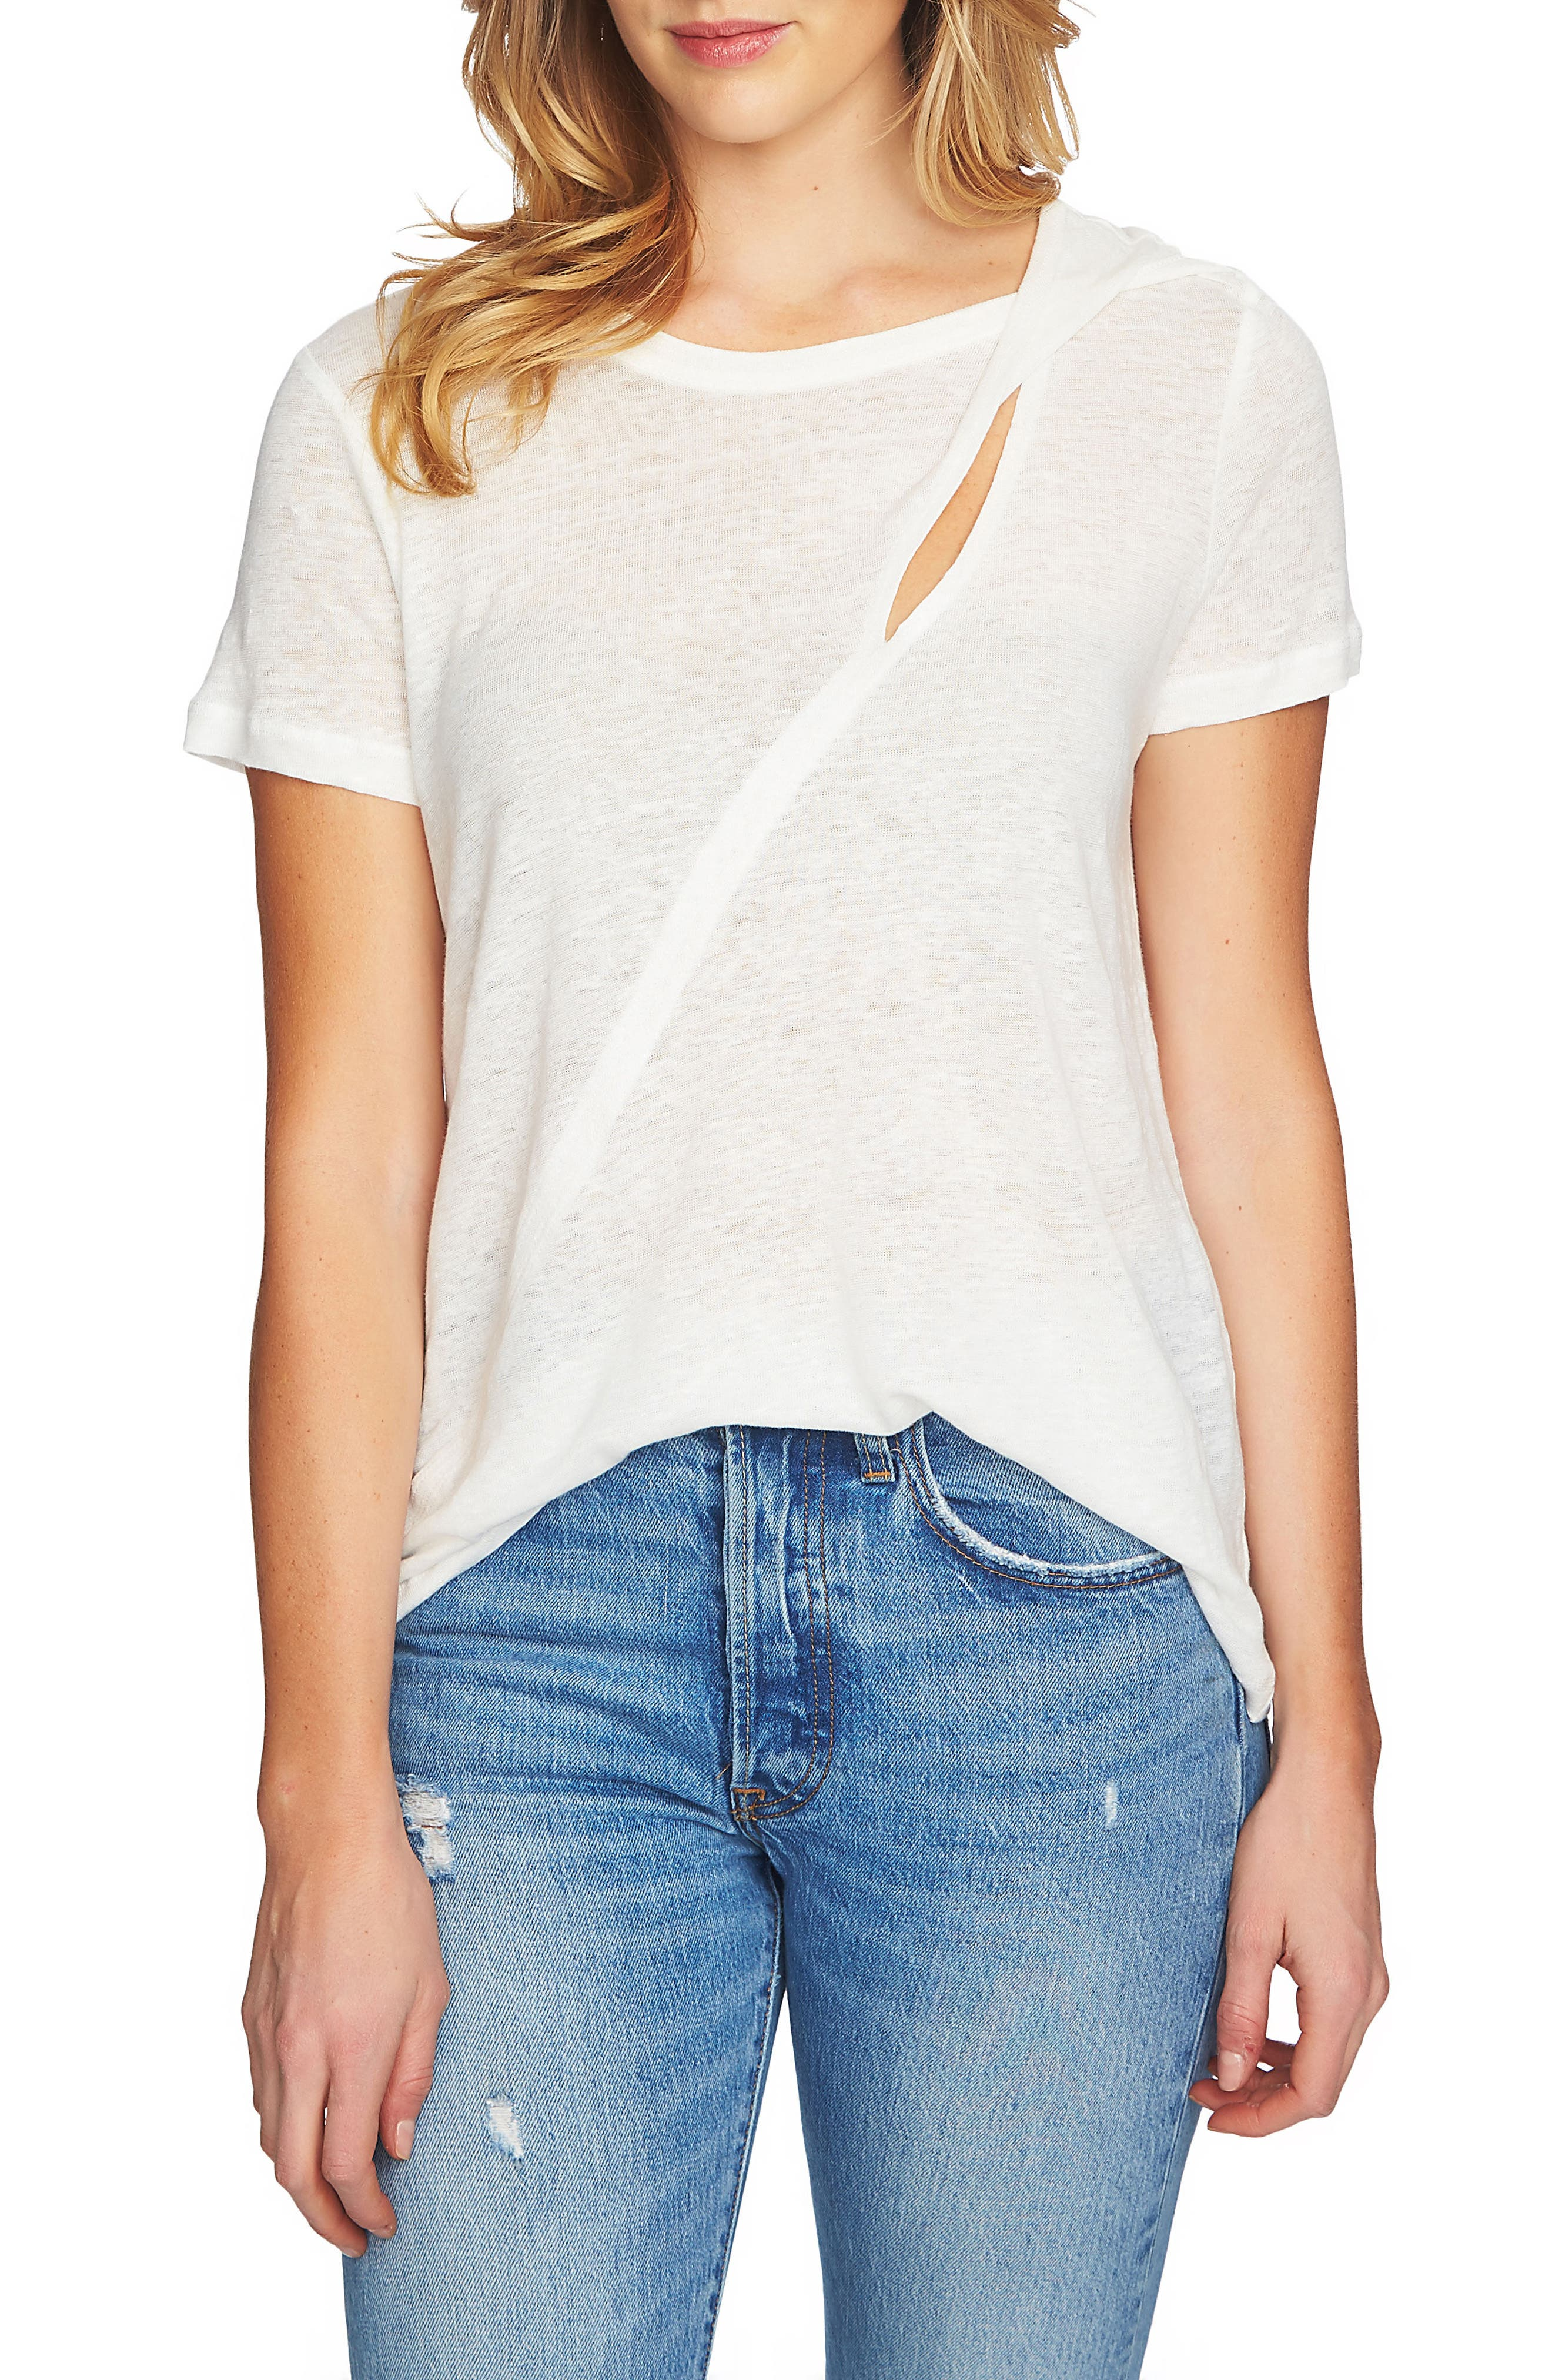 Alternate Image 1 Selected - 1.STATE Cutout Linen Tee